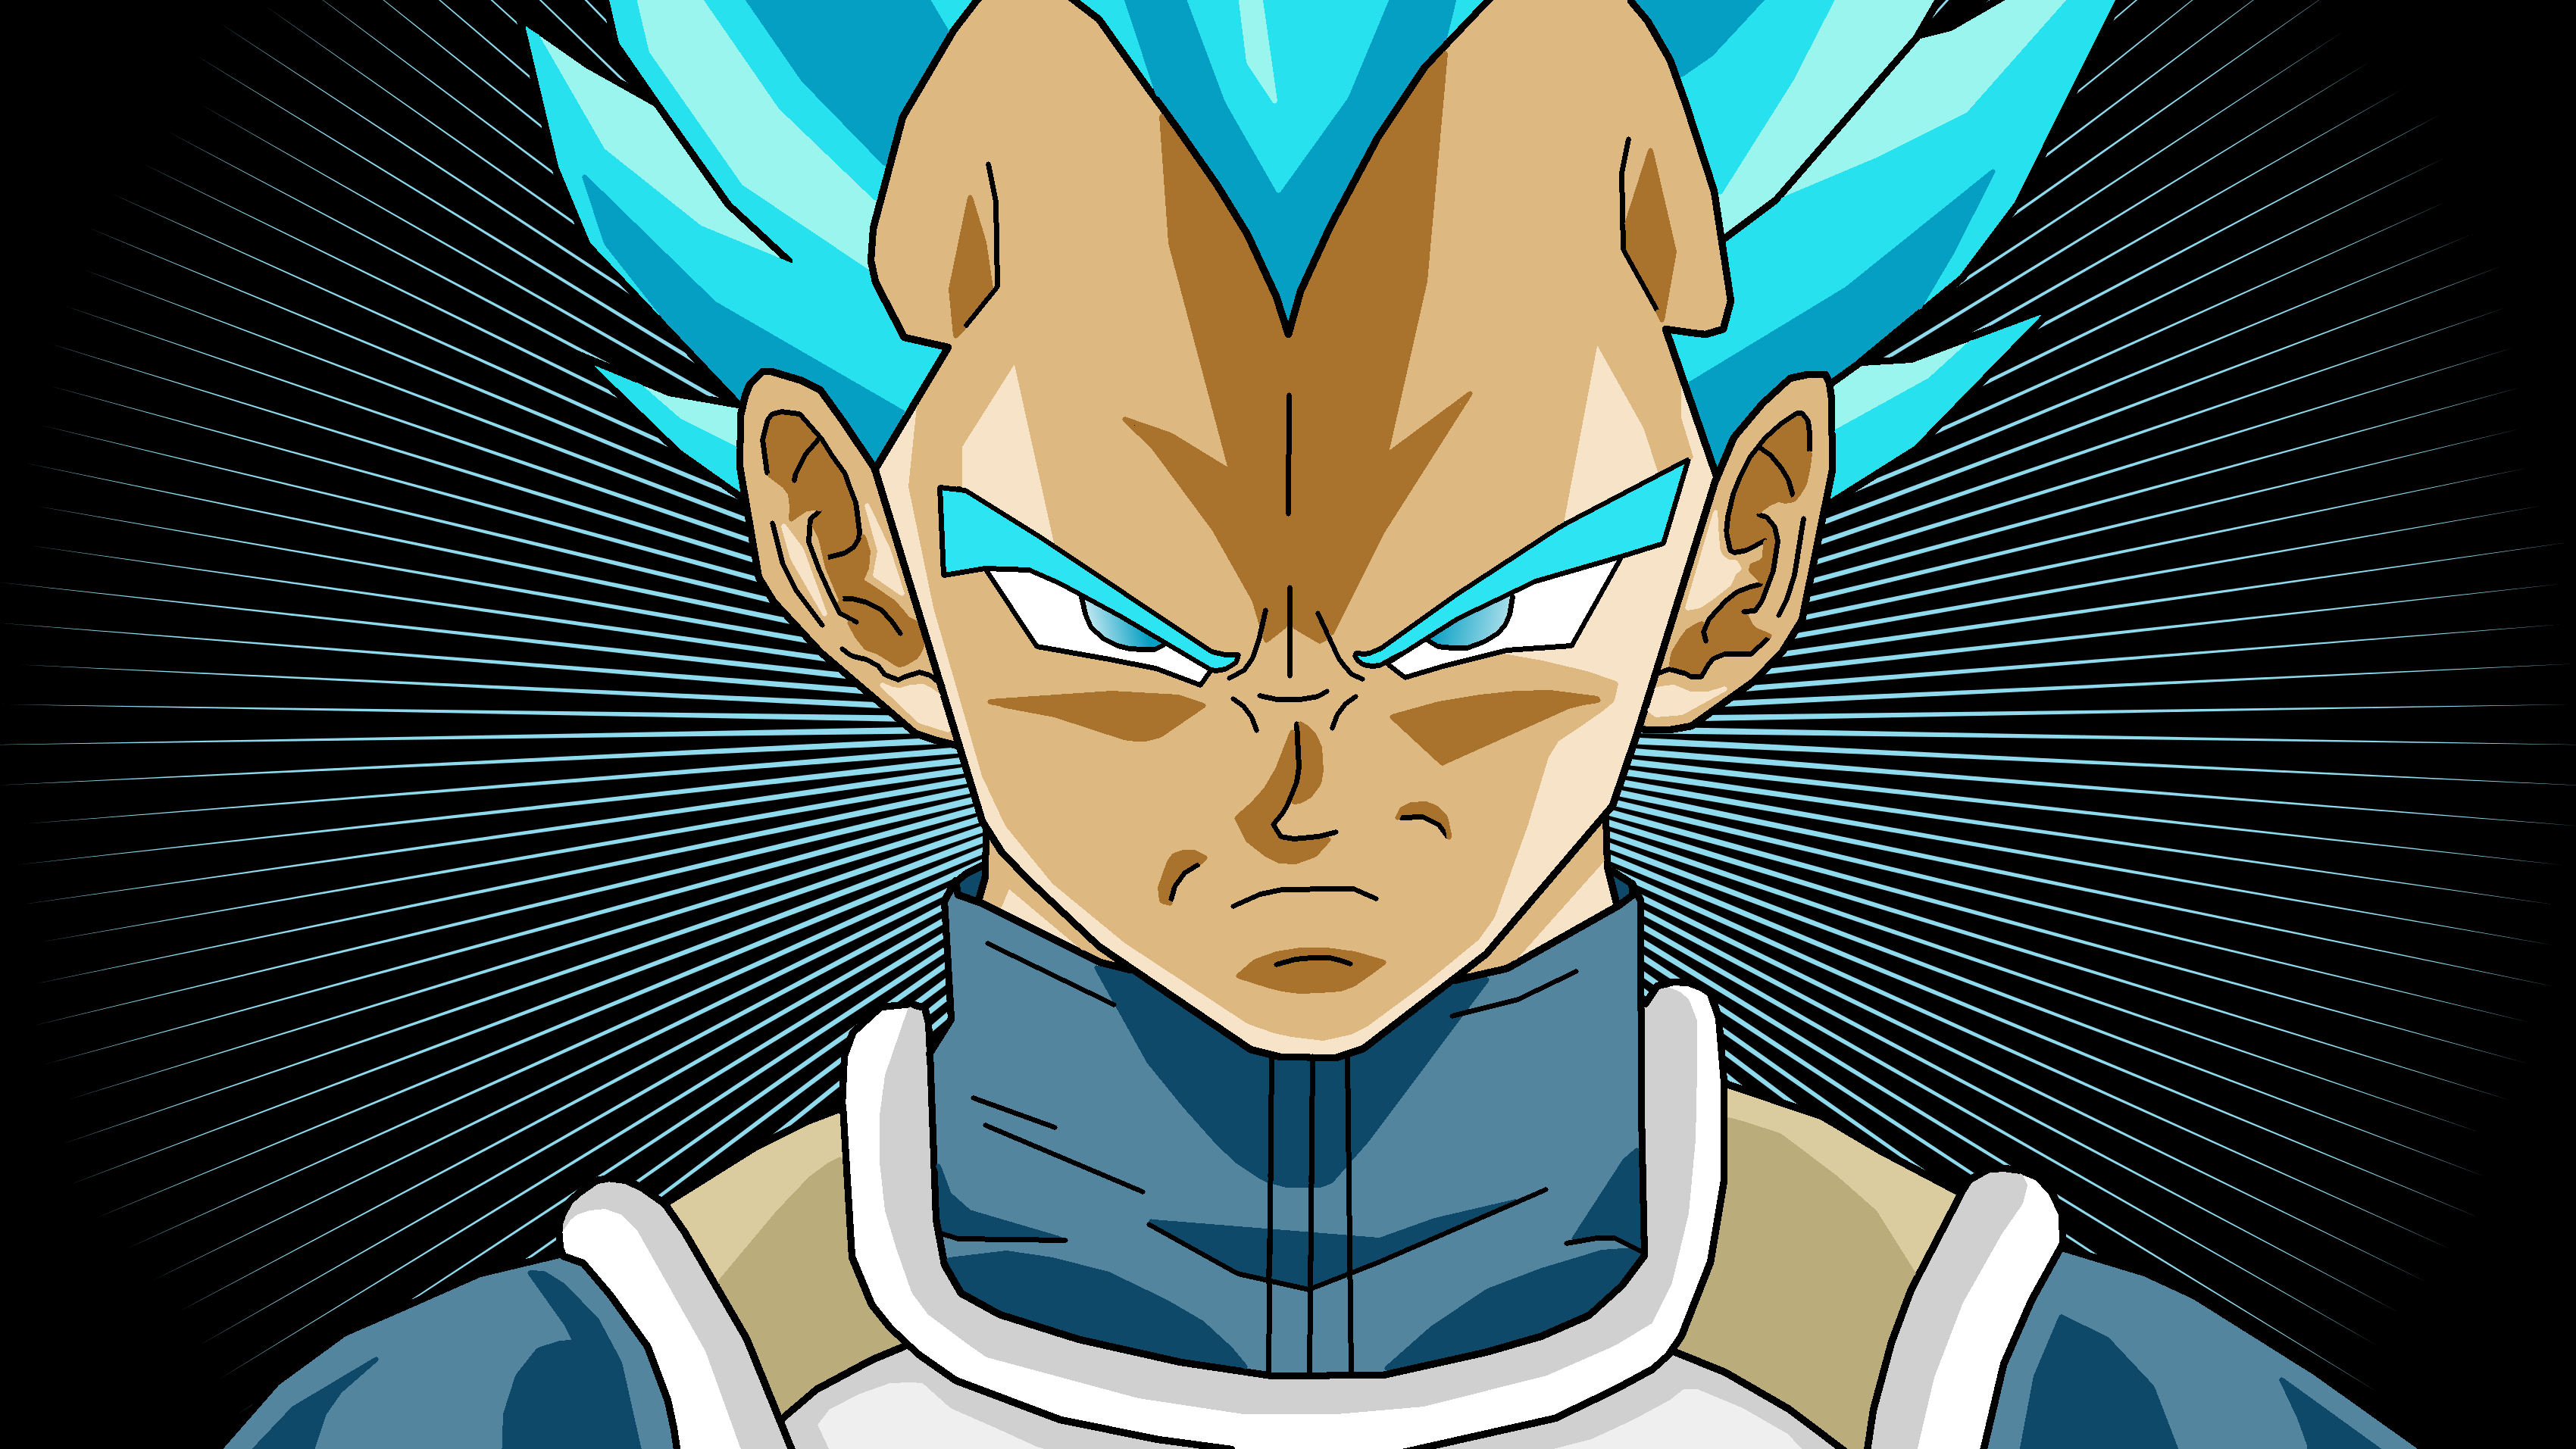 super saiyan vegeta wallpaper - sf wallpaper